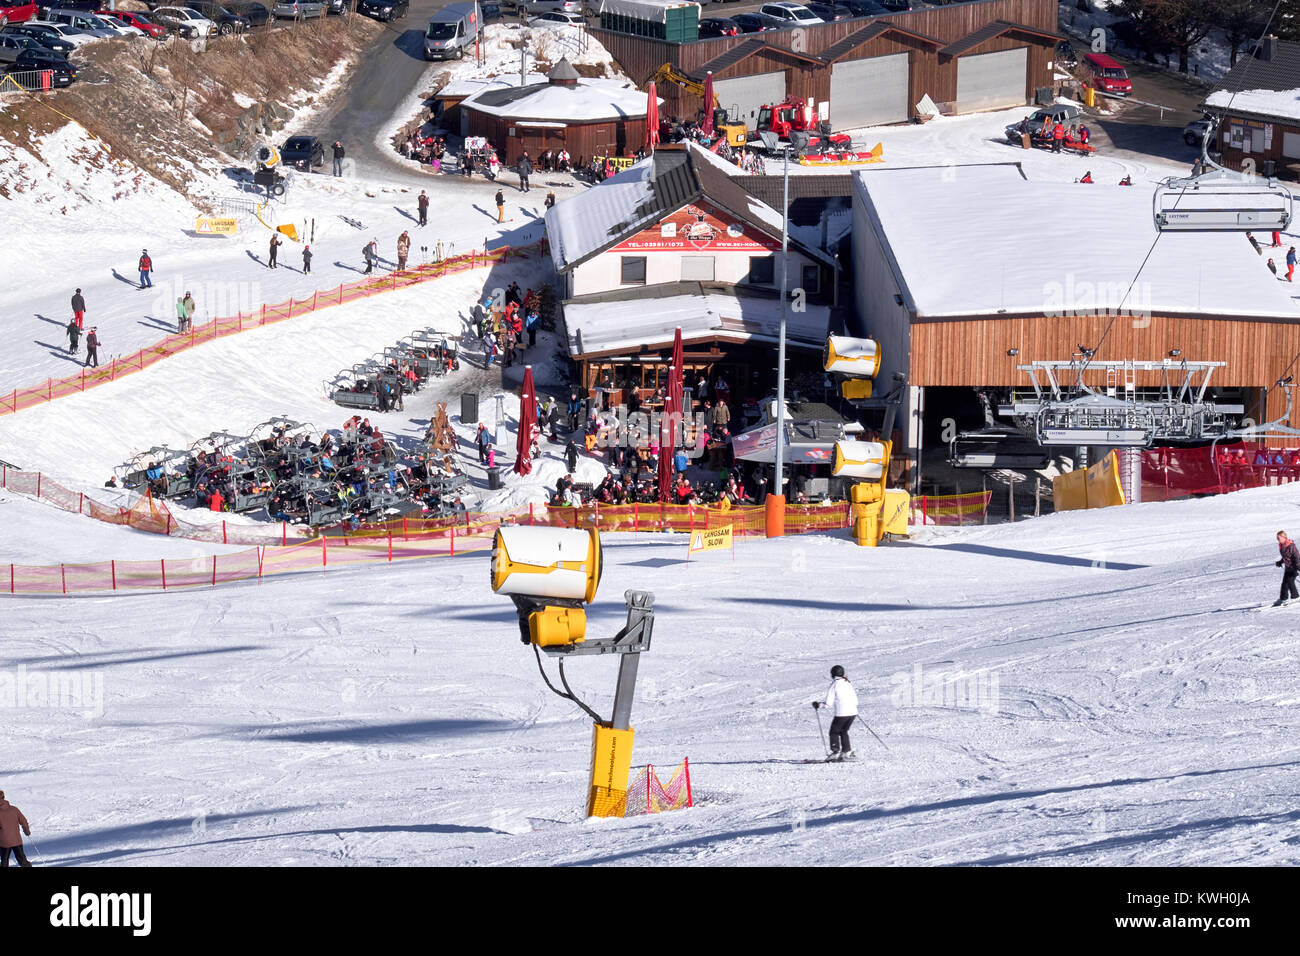 WINTERBERG, GERMANY - FEBRUARY 15, 2017: People at a bar near a bottom station at Ski Carousel Winterberg - Stock Image